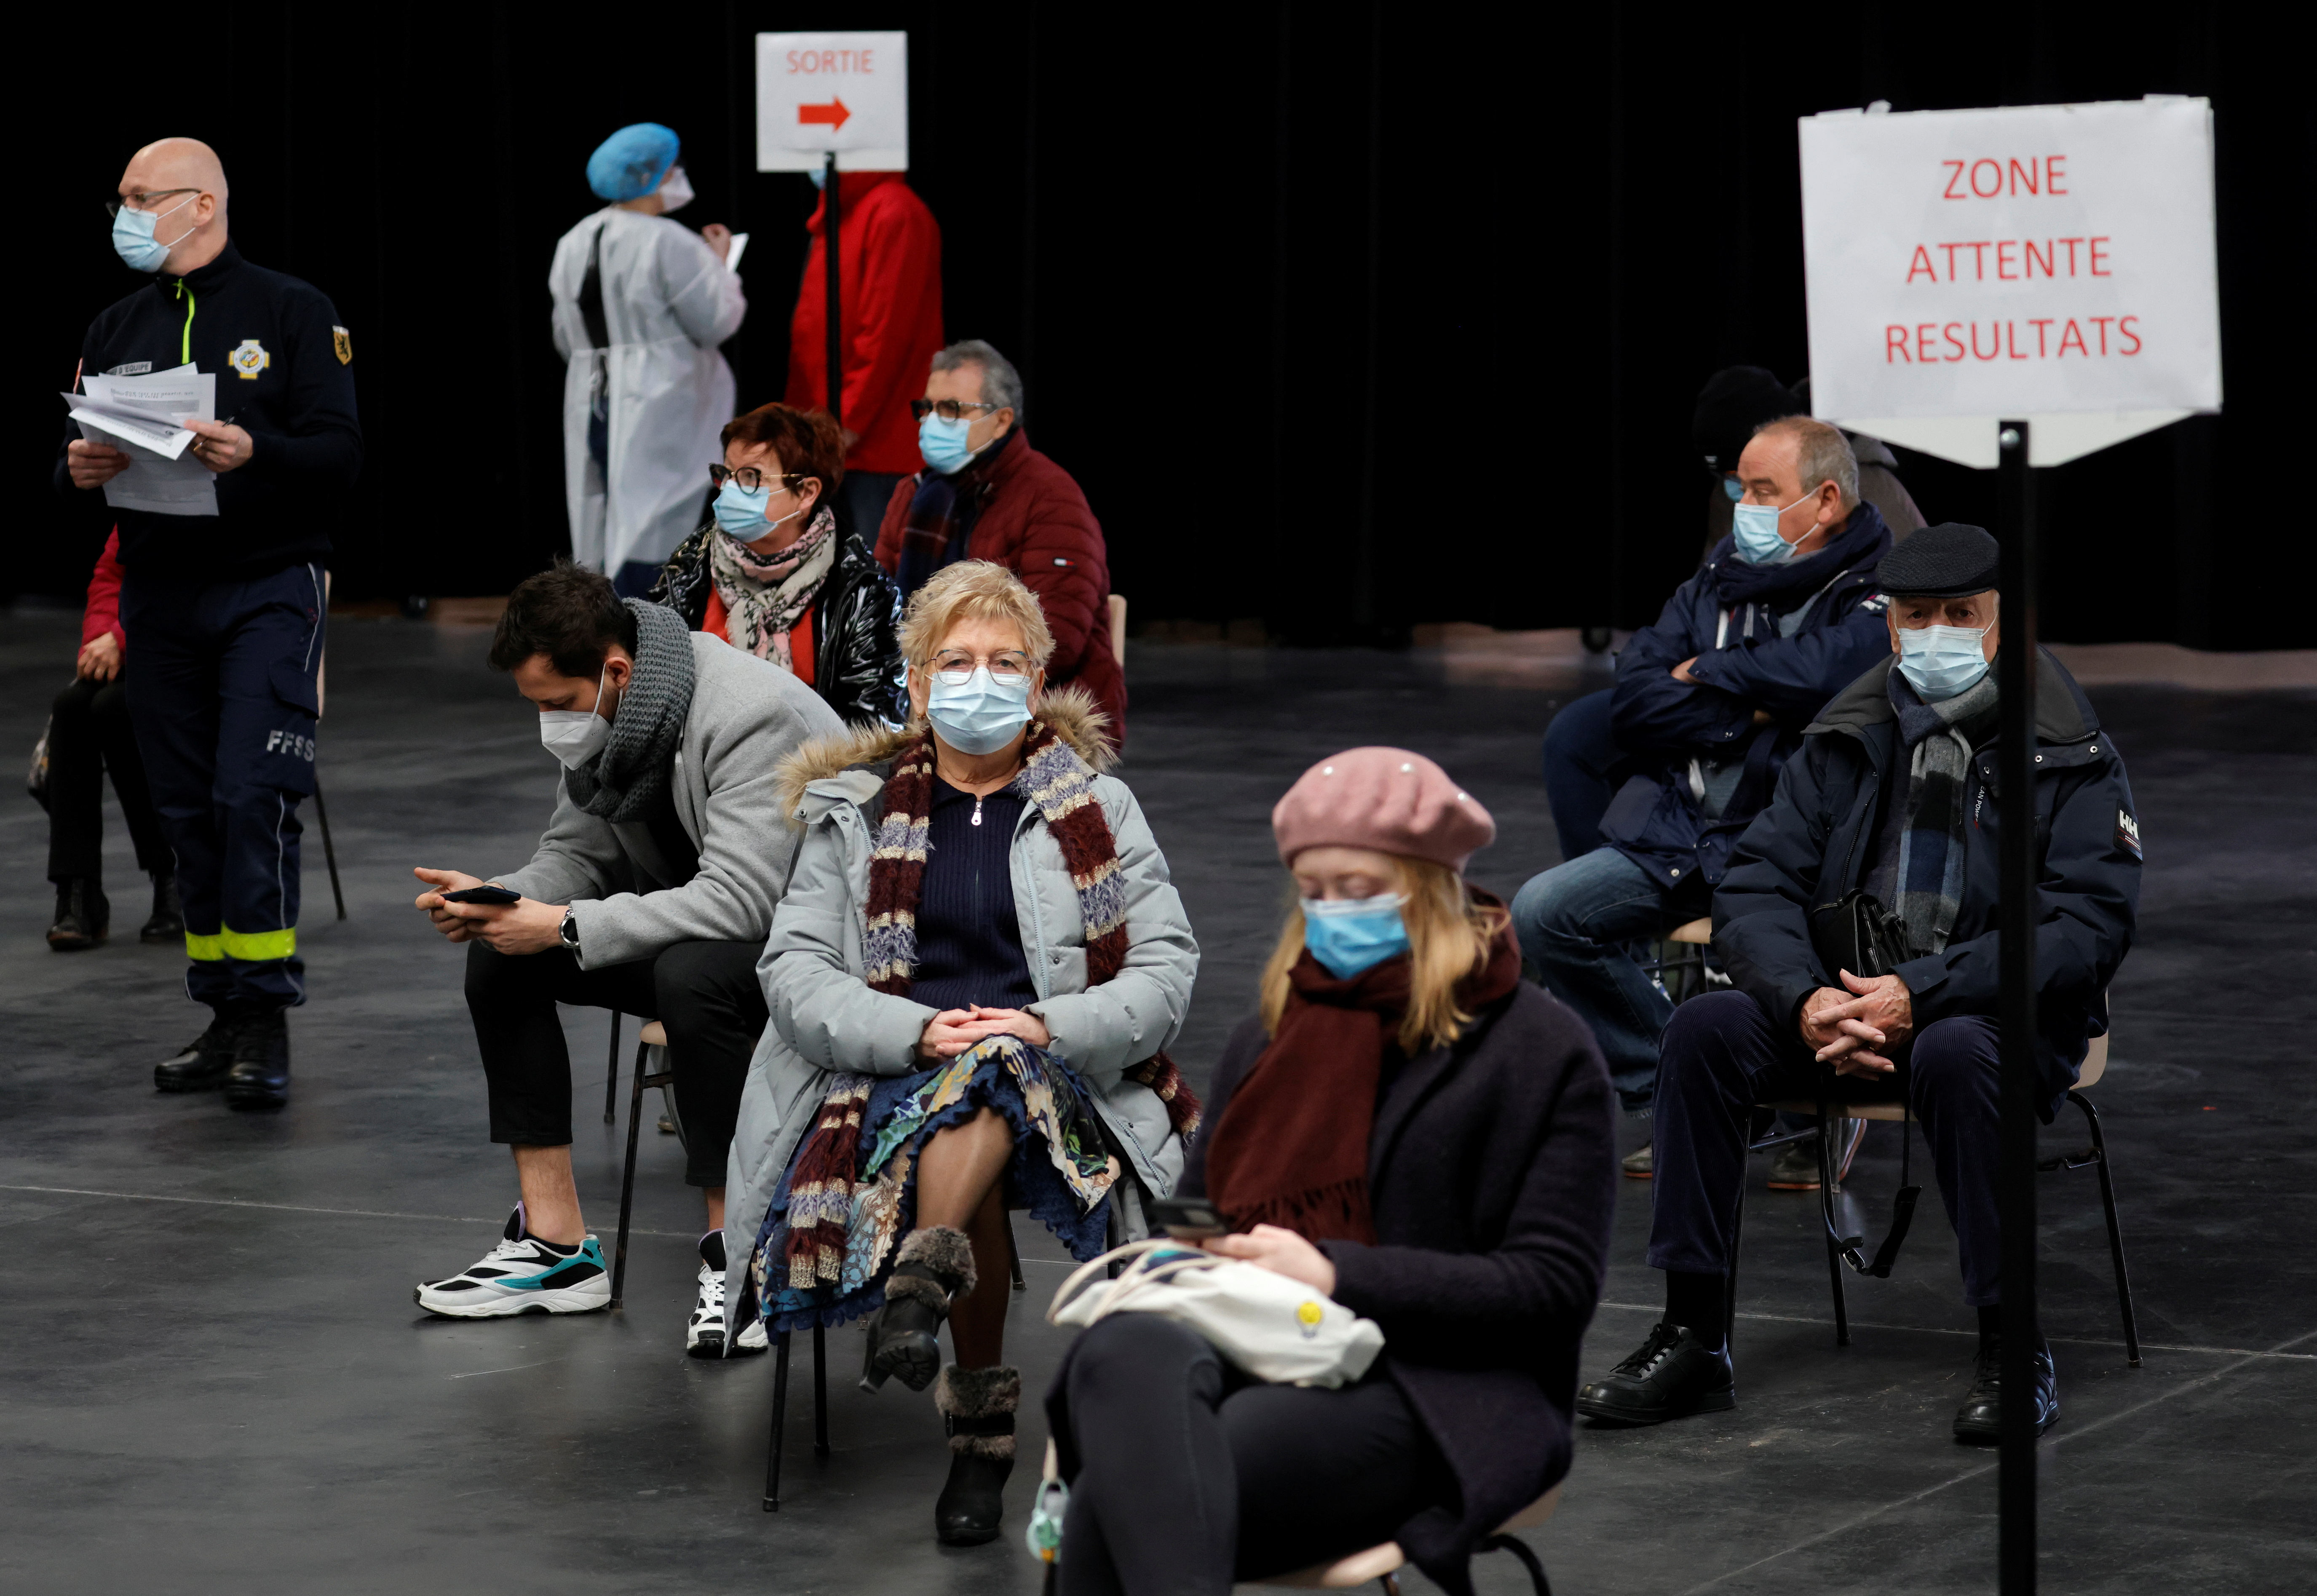 People, wearing protective face masks, wait for their test results at a coronavirus disease (COVID-19) testing center installed inside in the Kursaal concert hall in Dunkirk, France, February 18, 2021.  REUTERS/Pascal Rossignol/File Photo